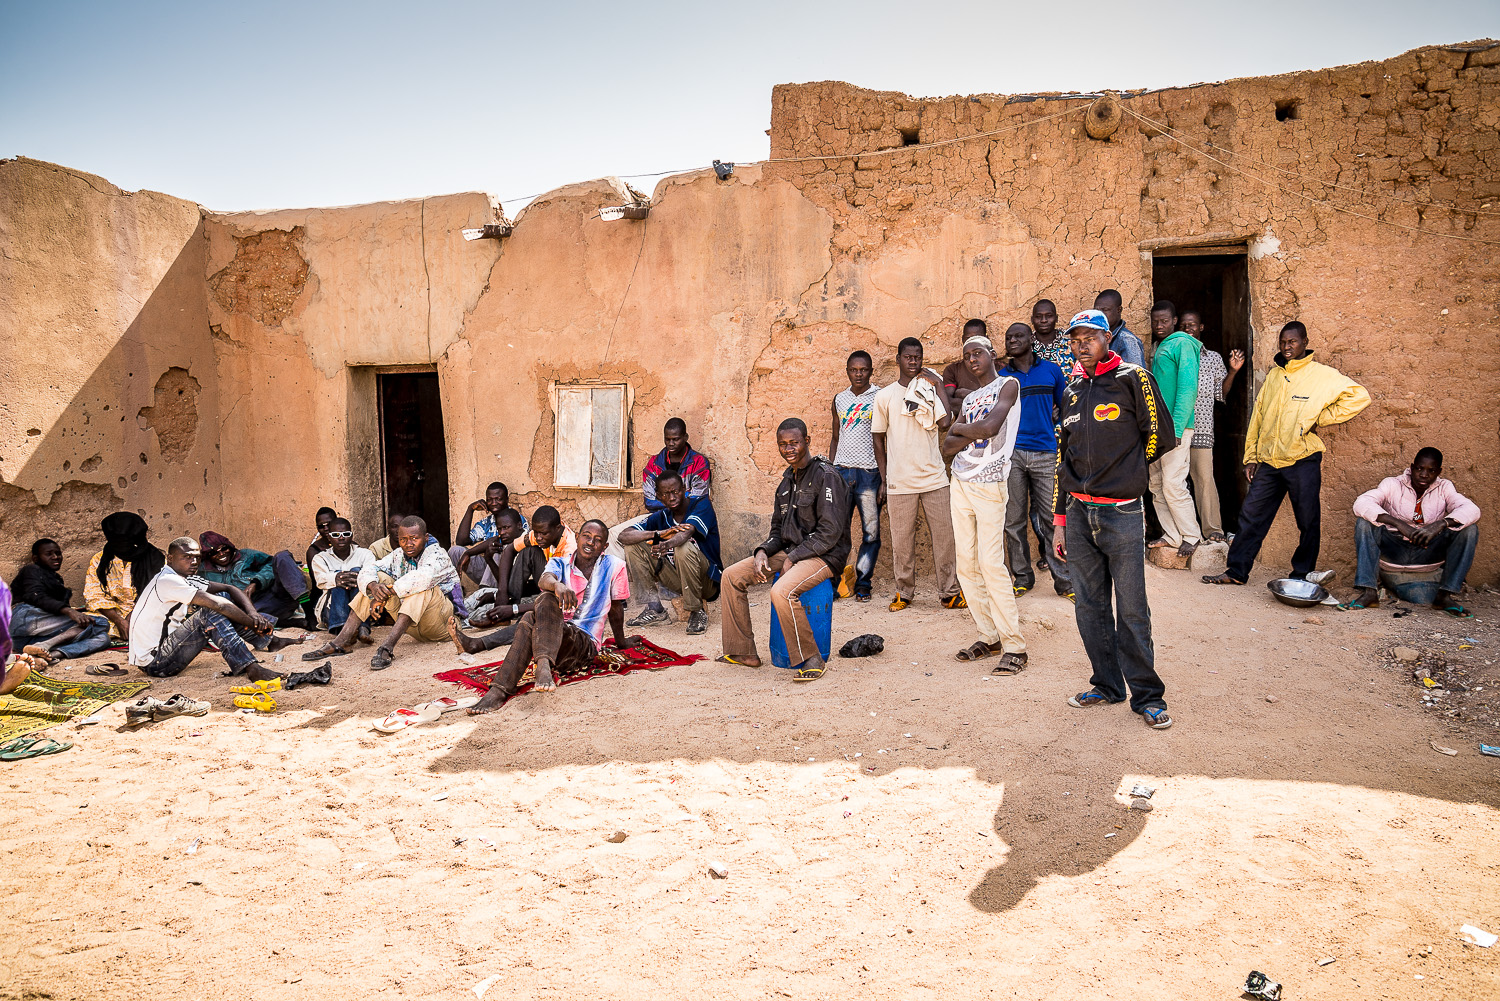 Ghetto-Agadez